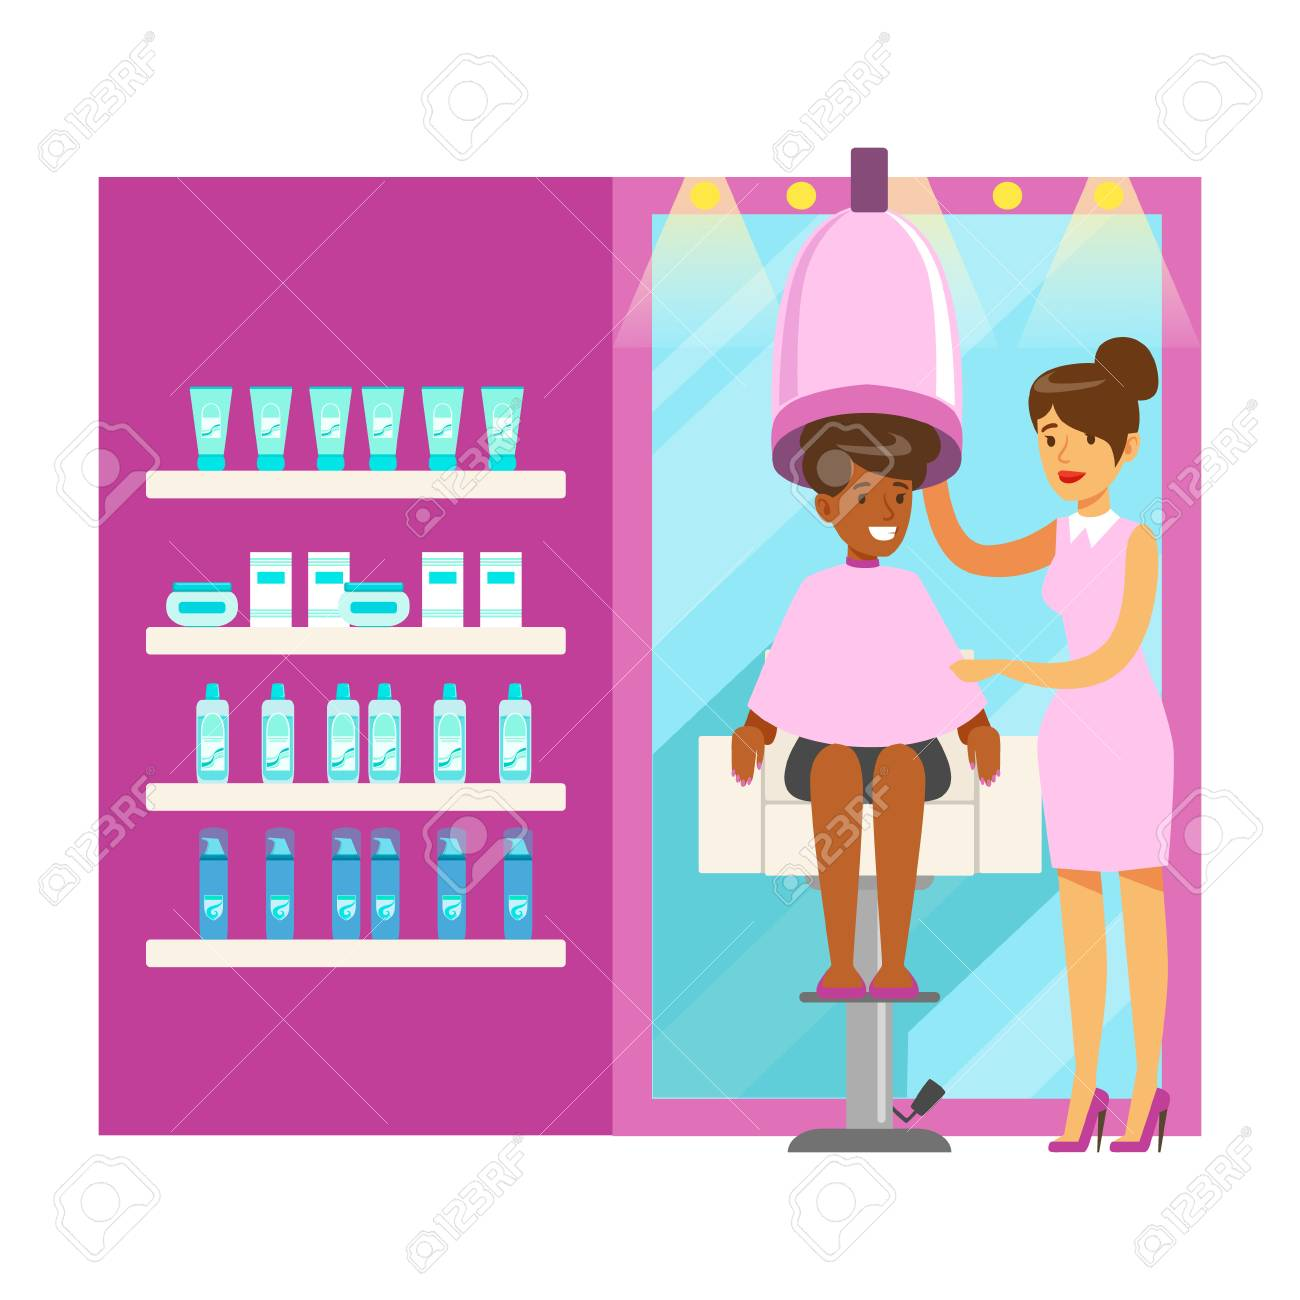 Women Drying Hair In Beauty Salon Colorful Cartoon Character Royalty Free Cliparts Vectors And Stock Illustration Image 76831162